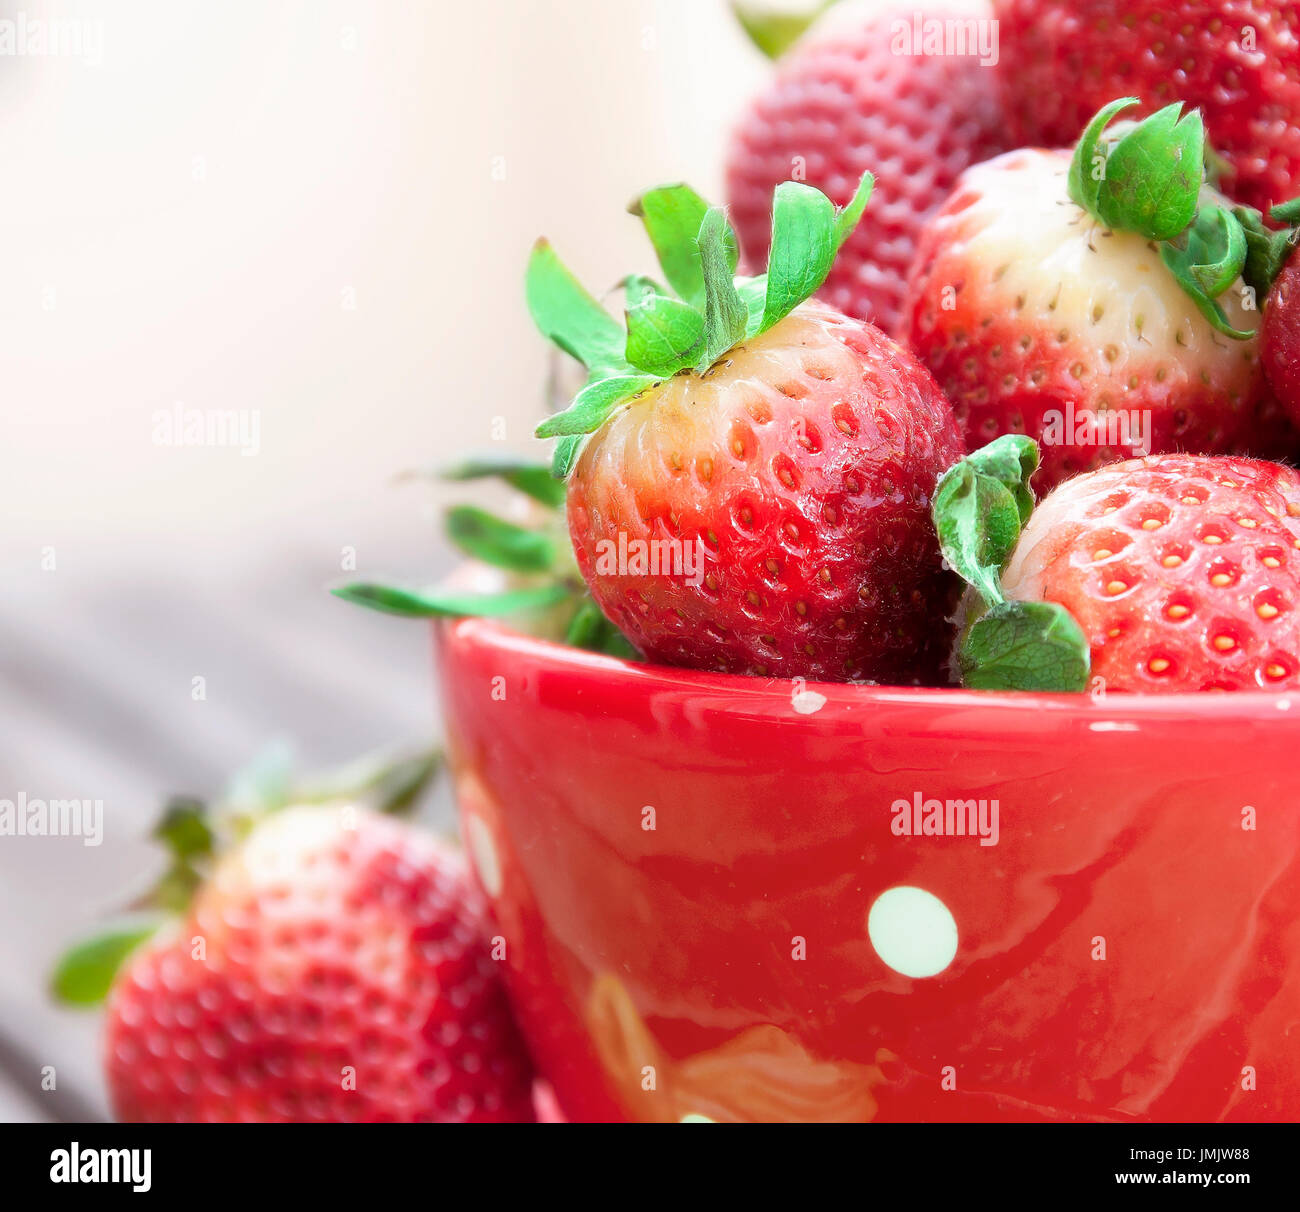 Colored photo of some strawberries inside a red cup Stock Photo